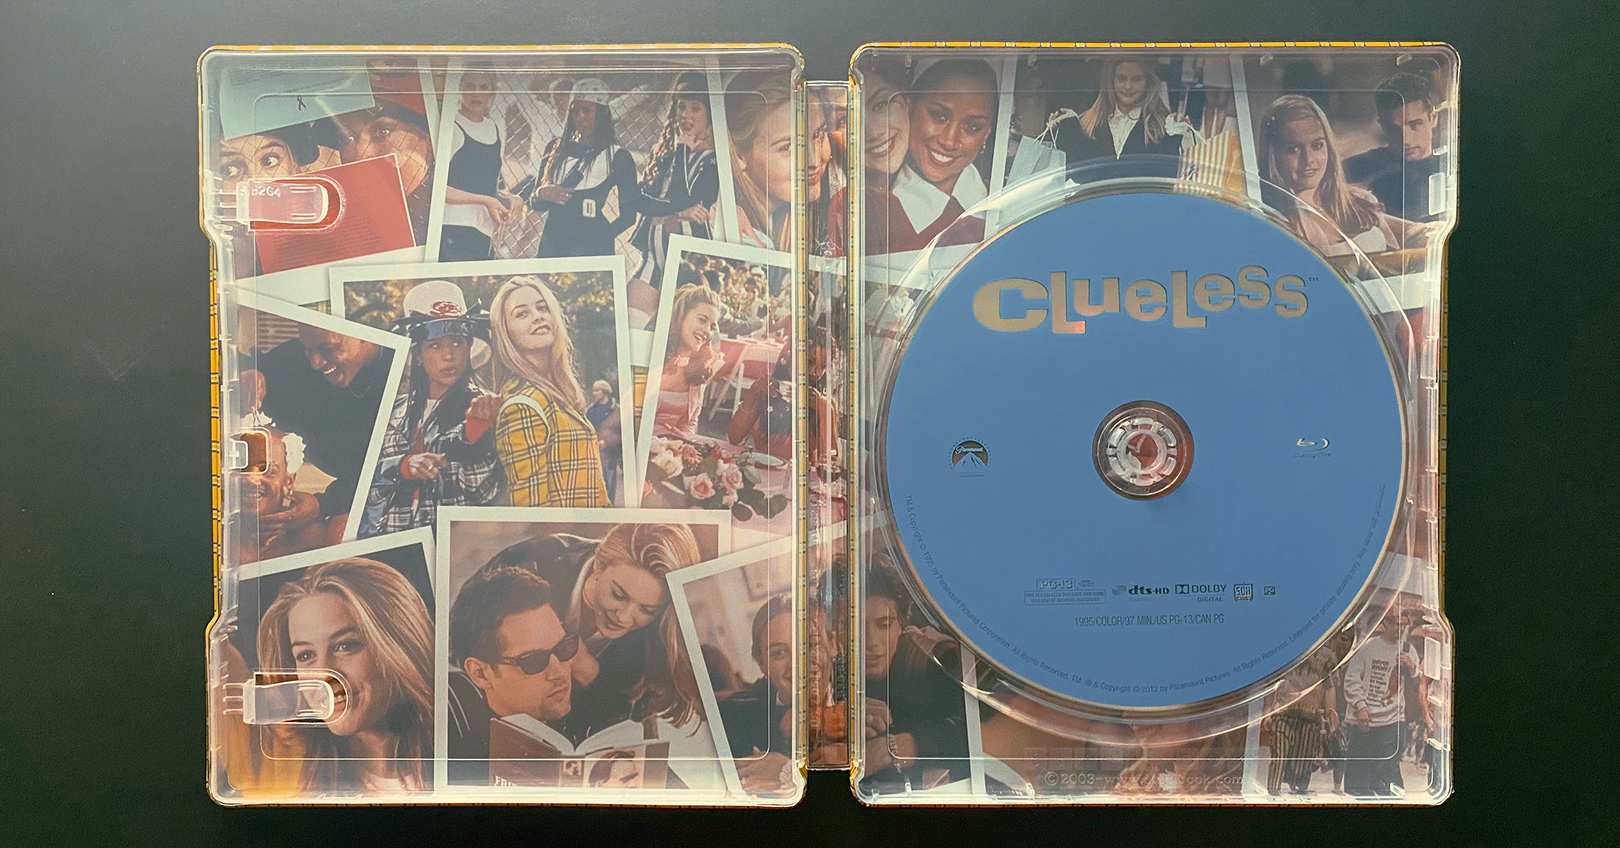 Clueless - Inside of the Steelbook